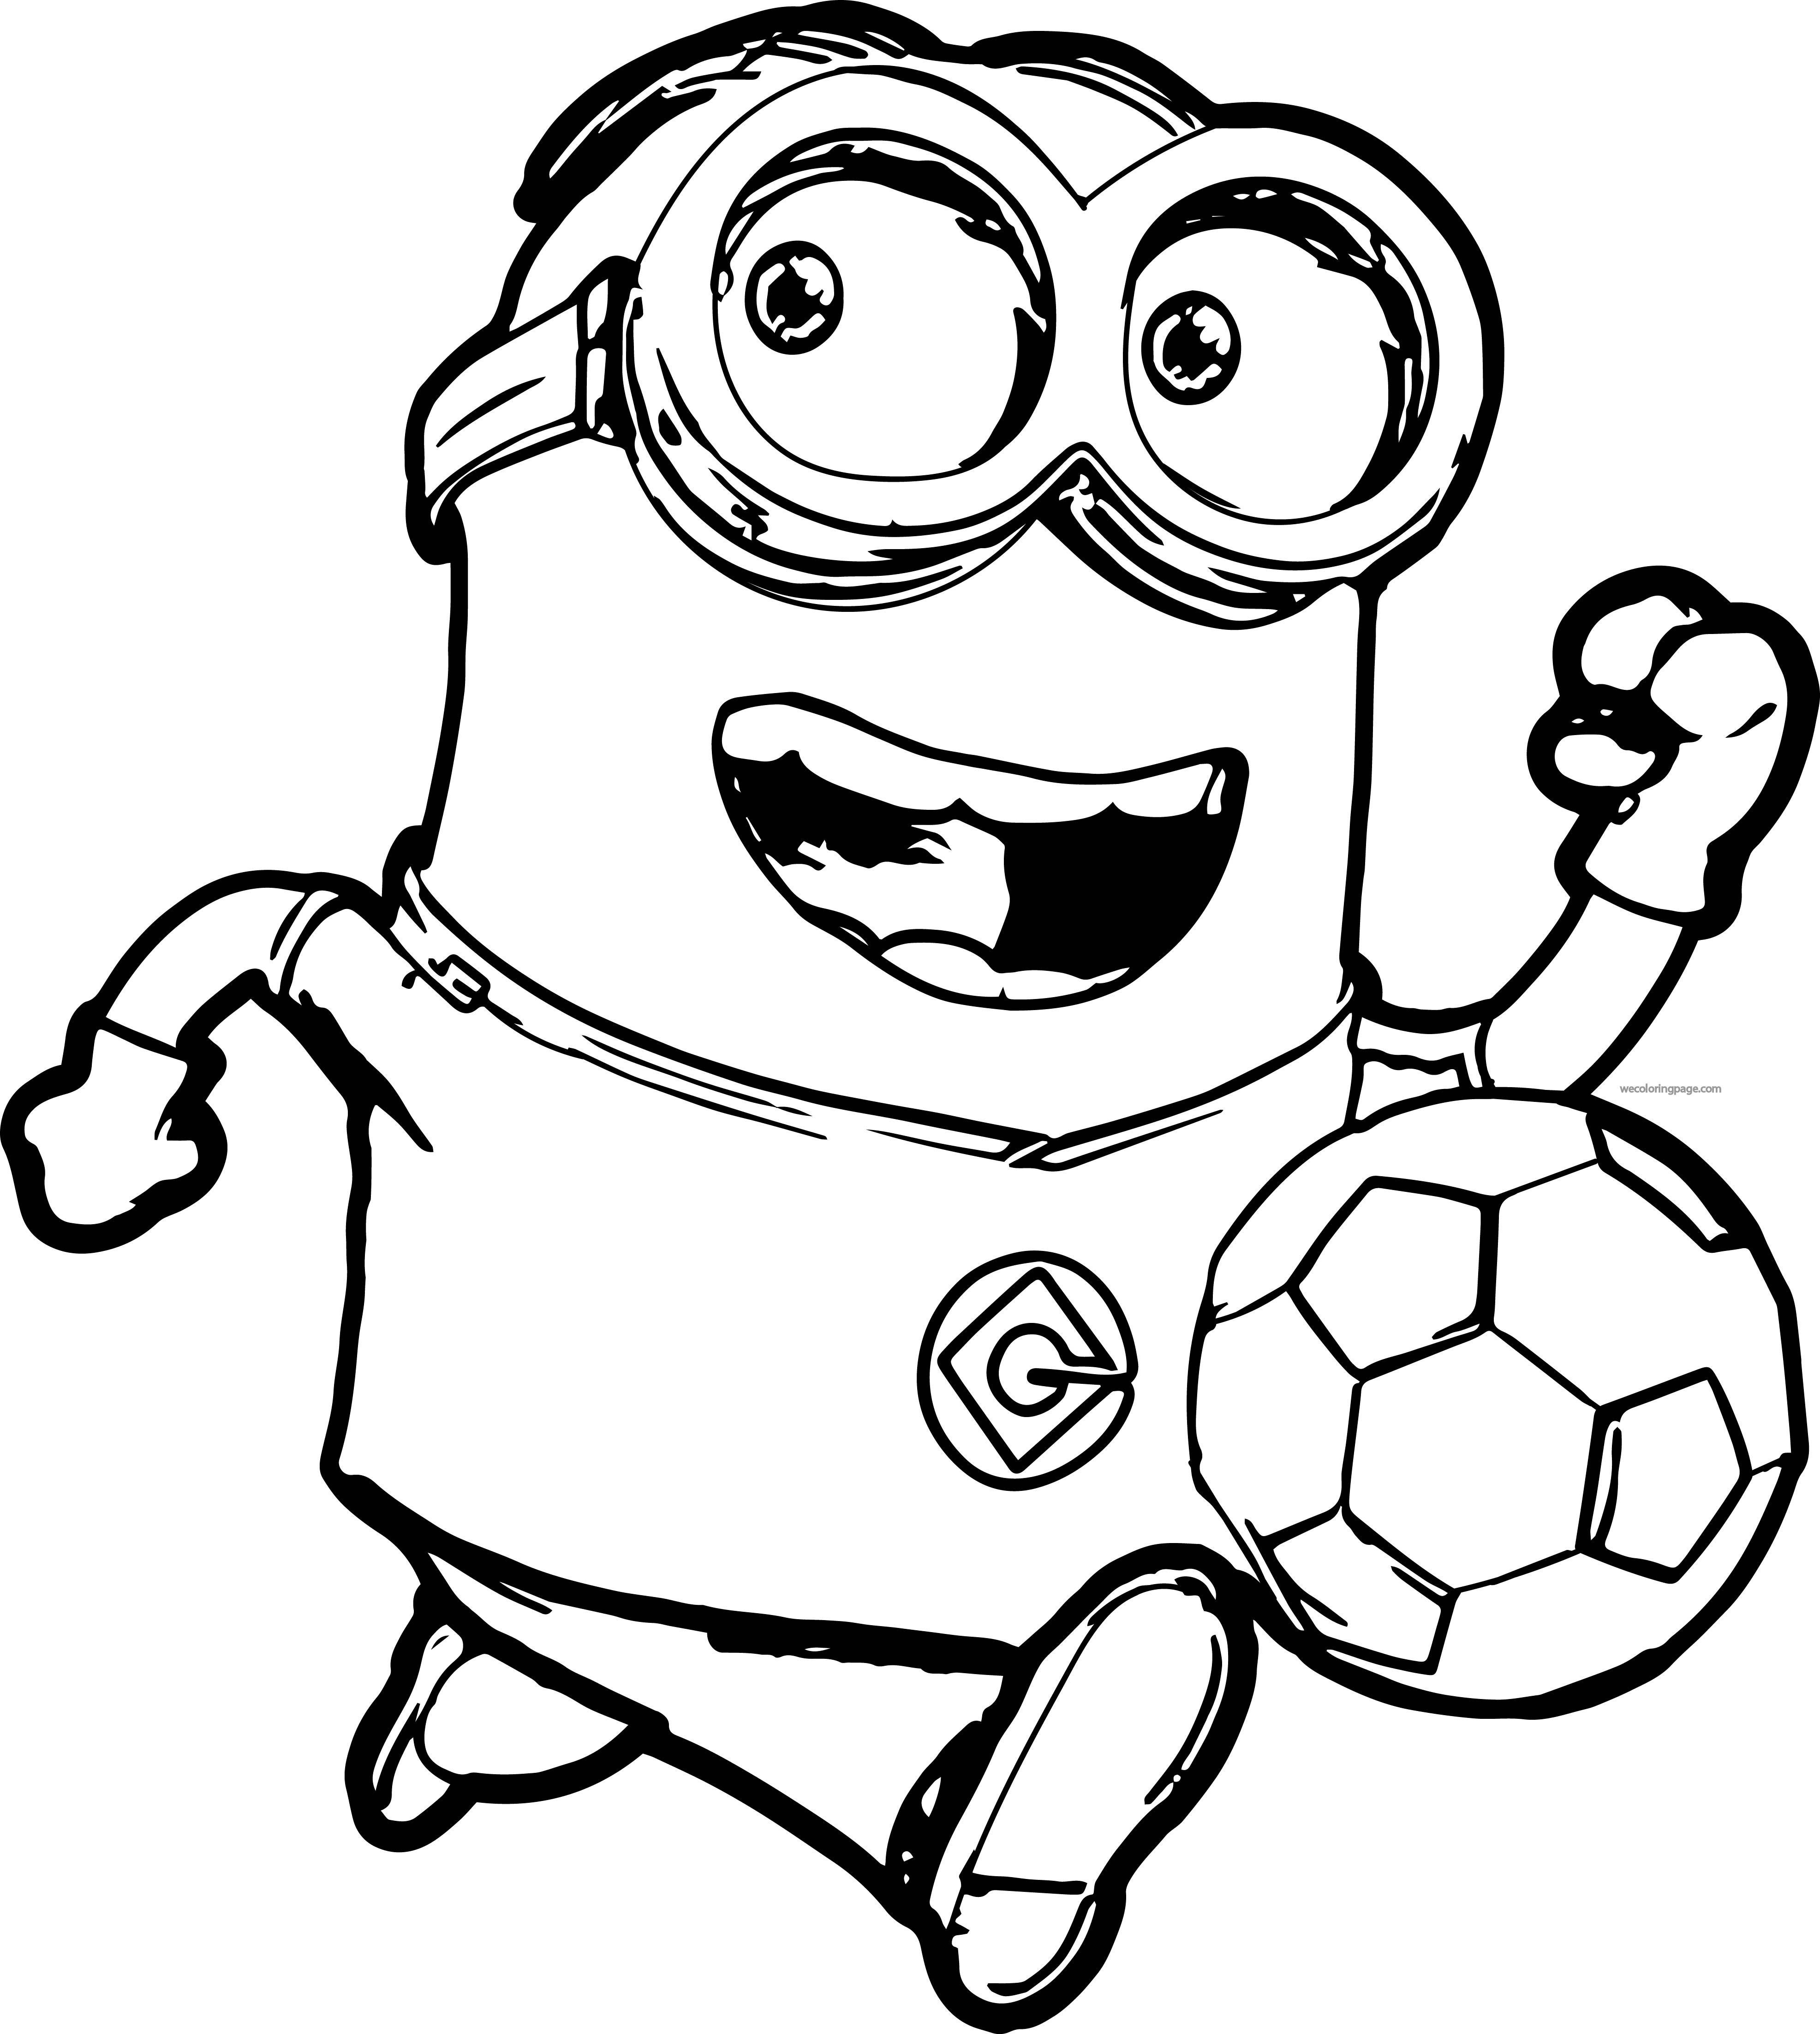 Minion Coloring Printables Free Minion Coloring Pages Printables Free Minion Coloring Prin Minion Coloring Pages Minions Coloring Pages Sports Coloring Pages